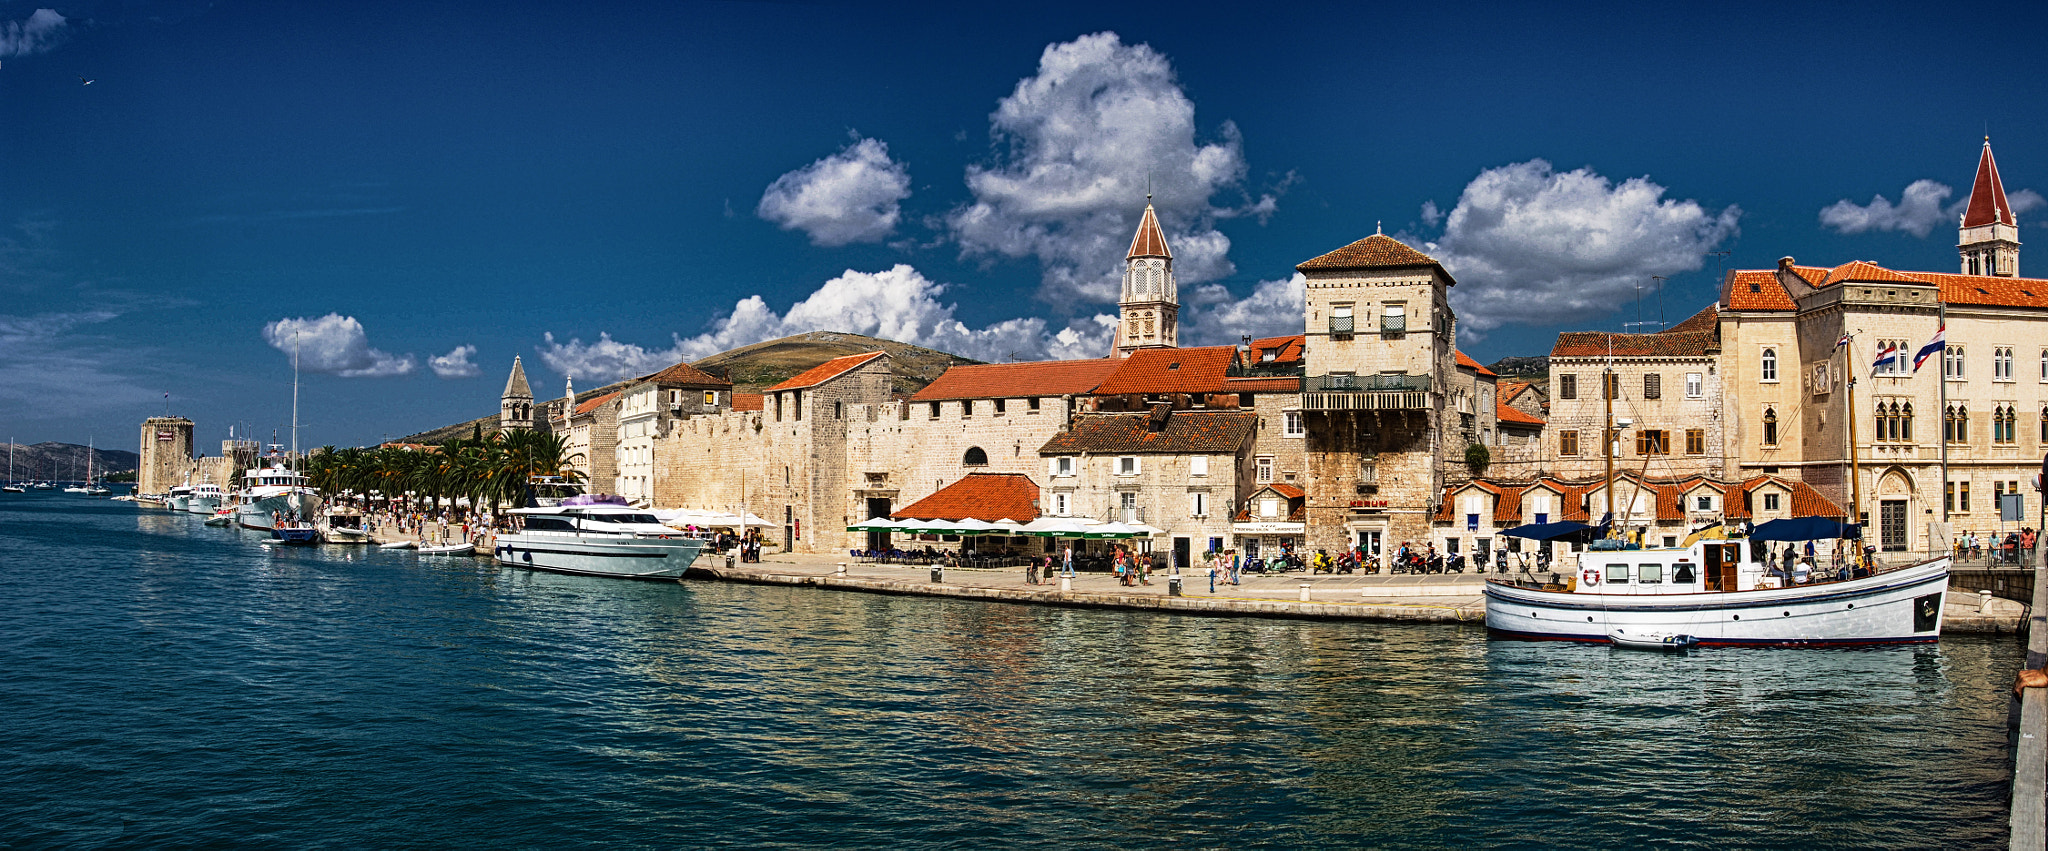 Photograph Trogir by Edmund Orzsik on 500px